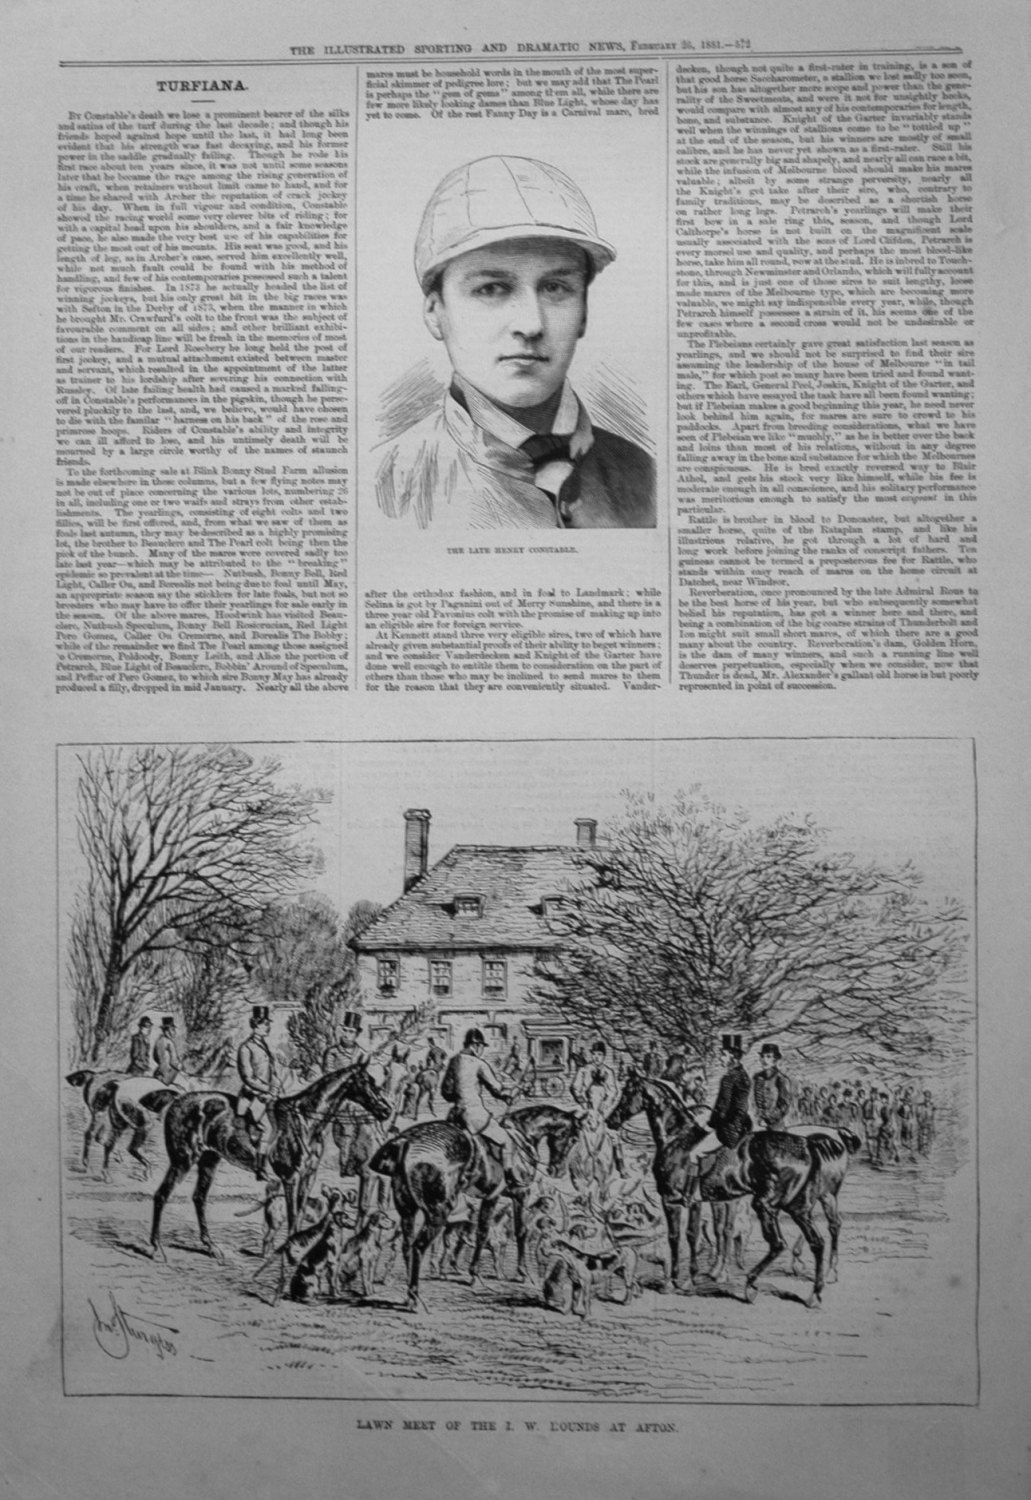 Lawn Meet of the I. W. Hounds at Afton. 1881